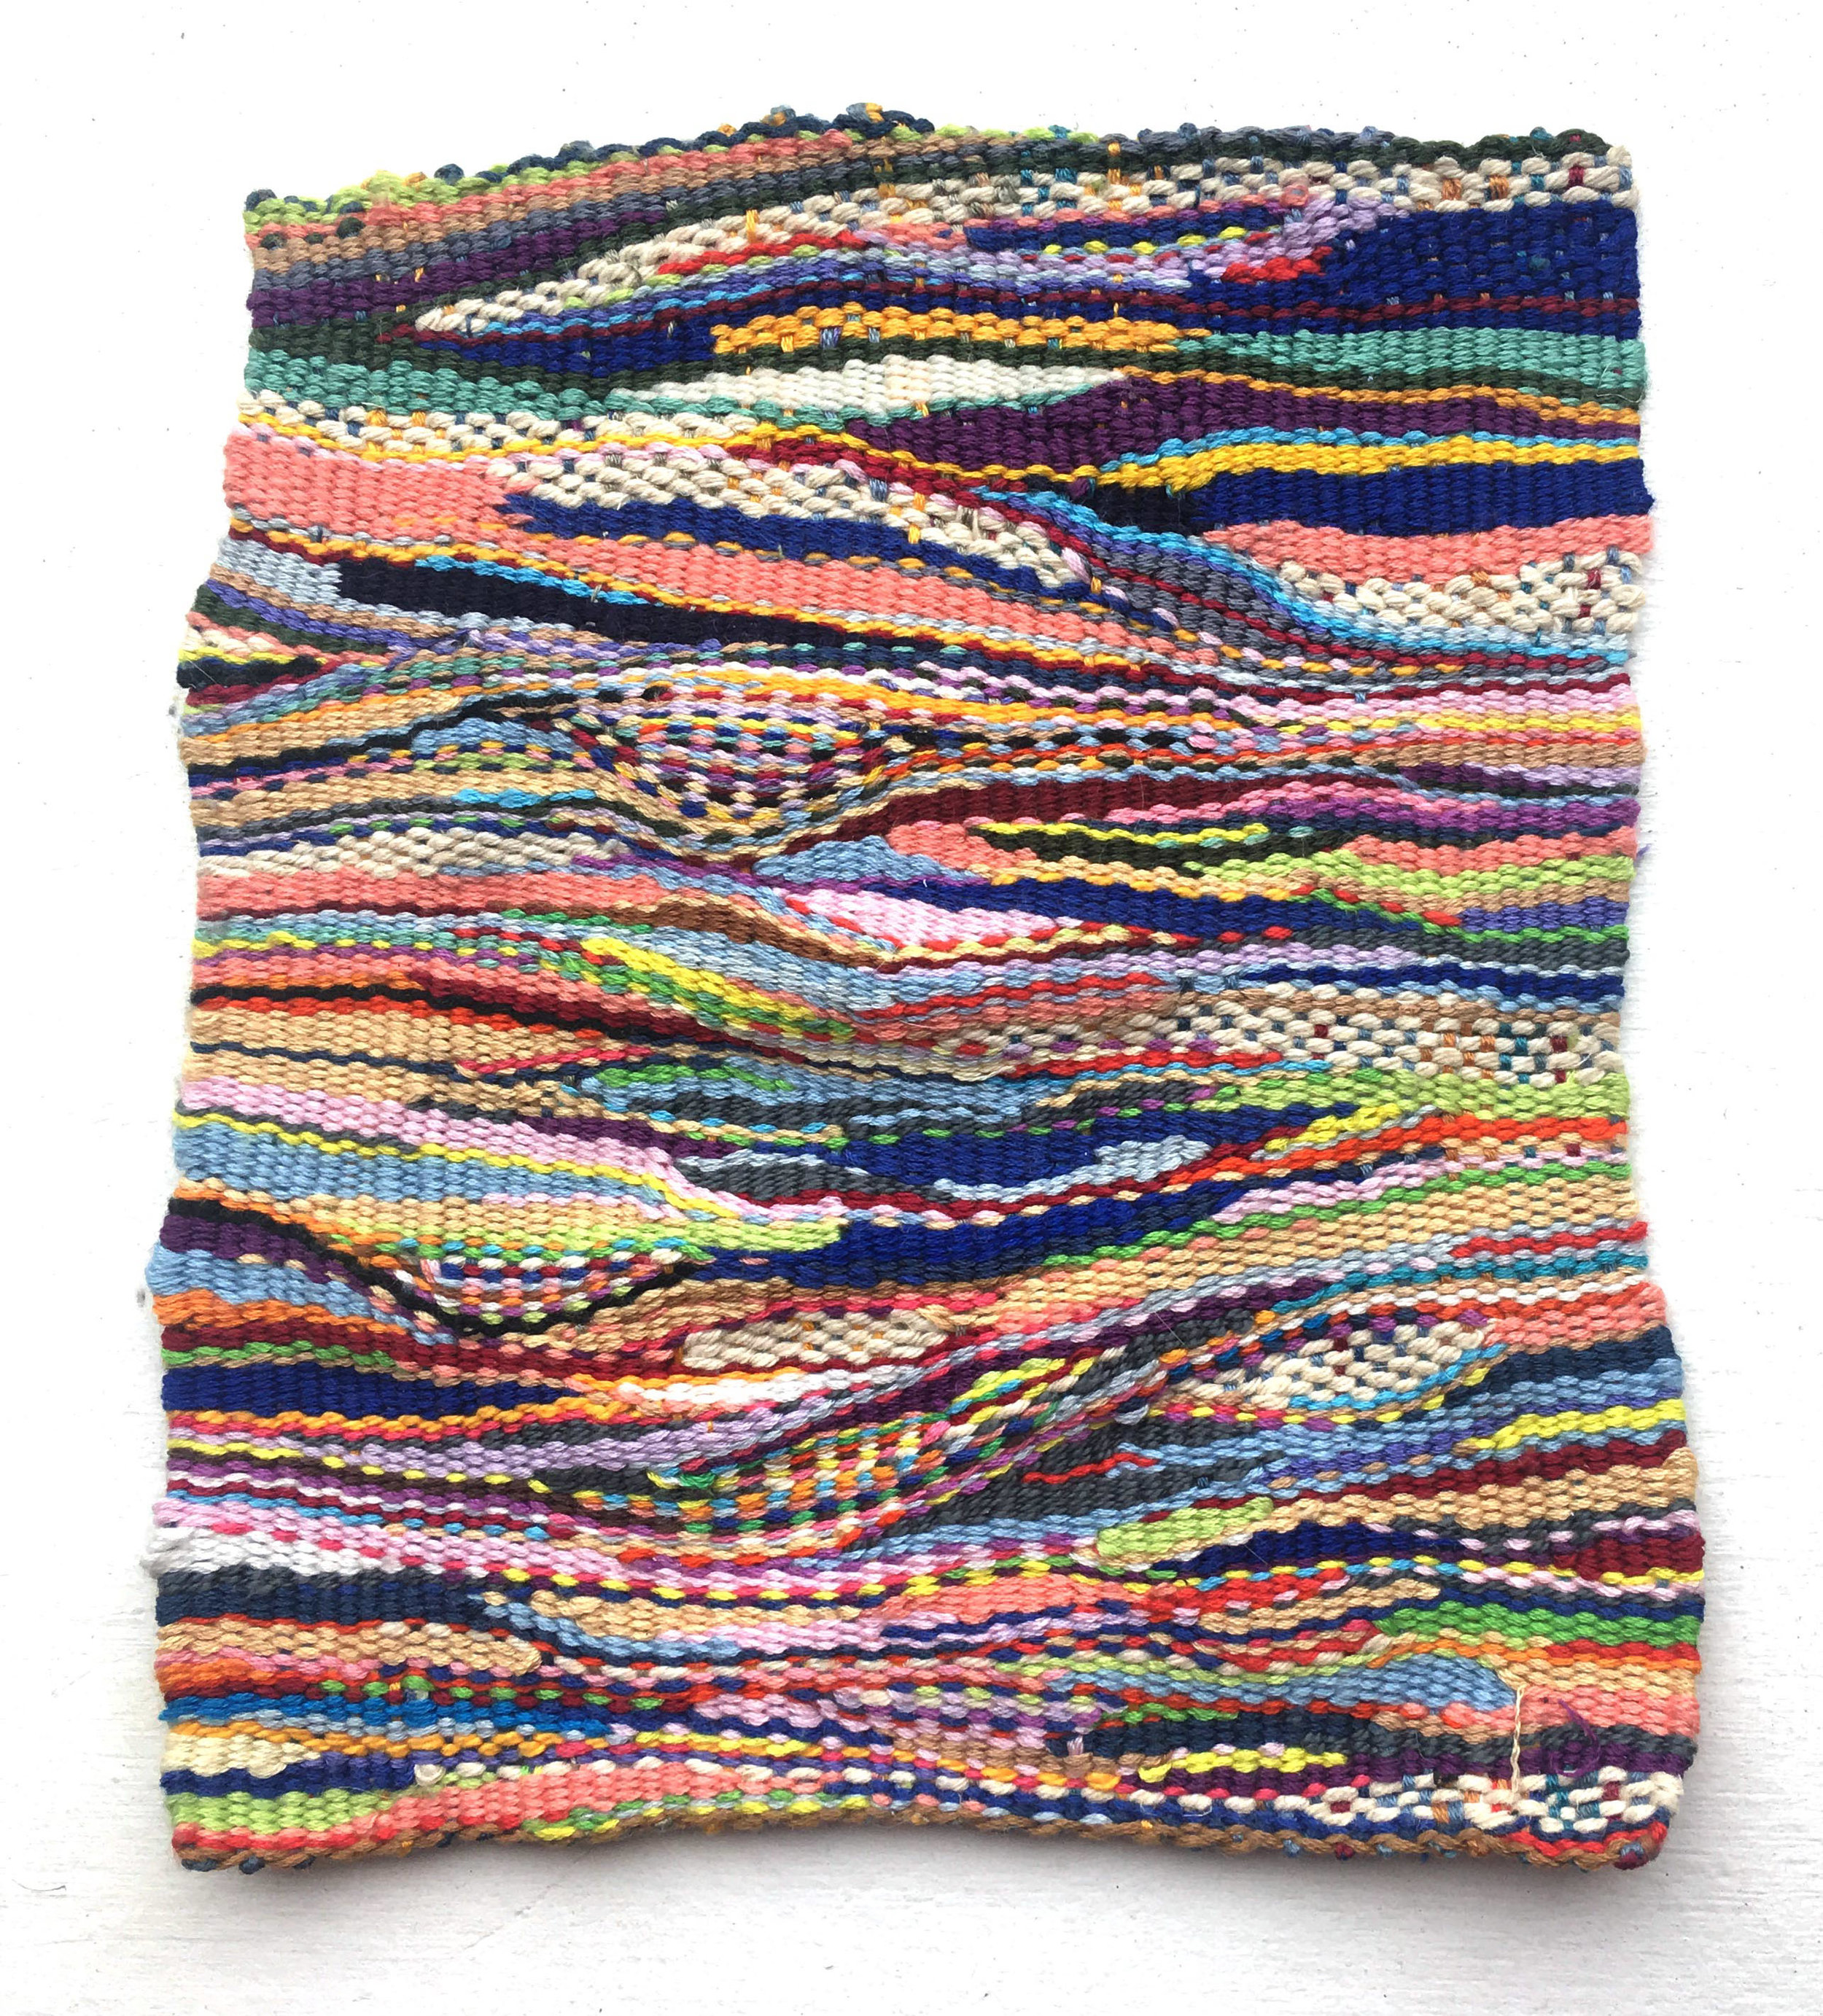 6 x 7  Woven embroidery thread